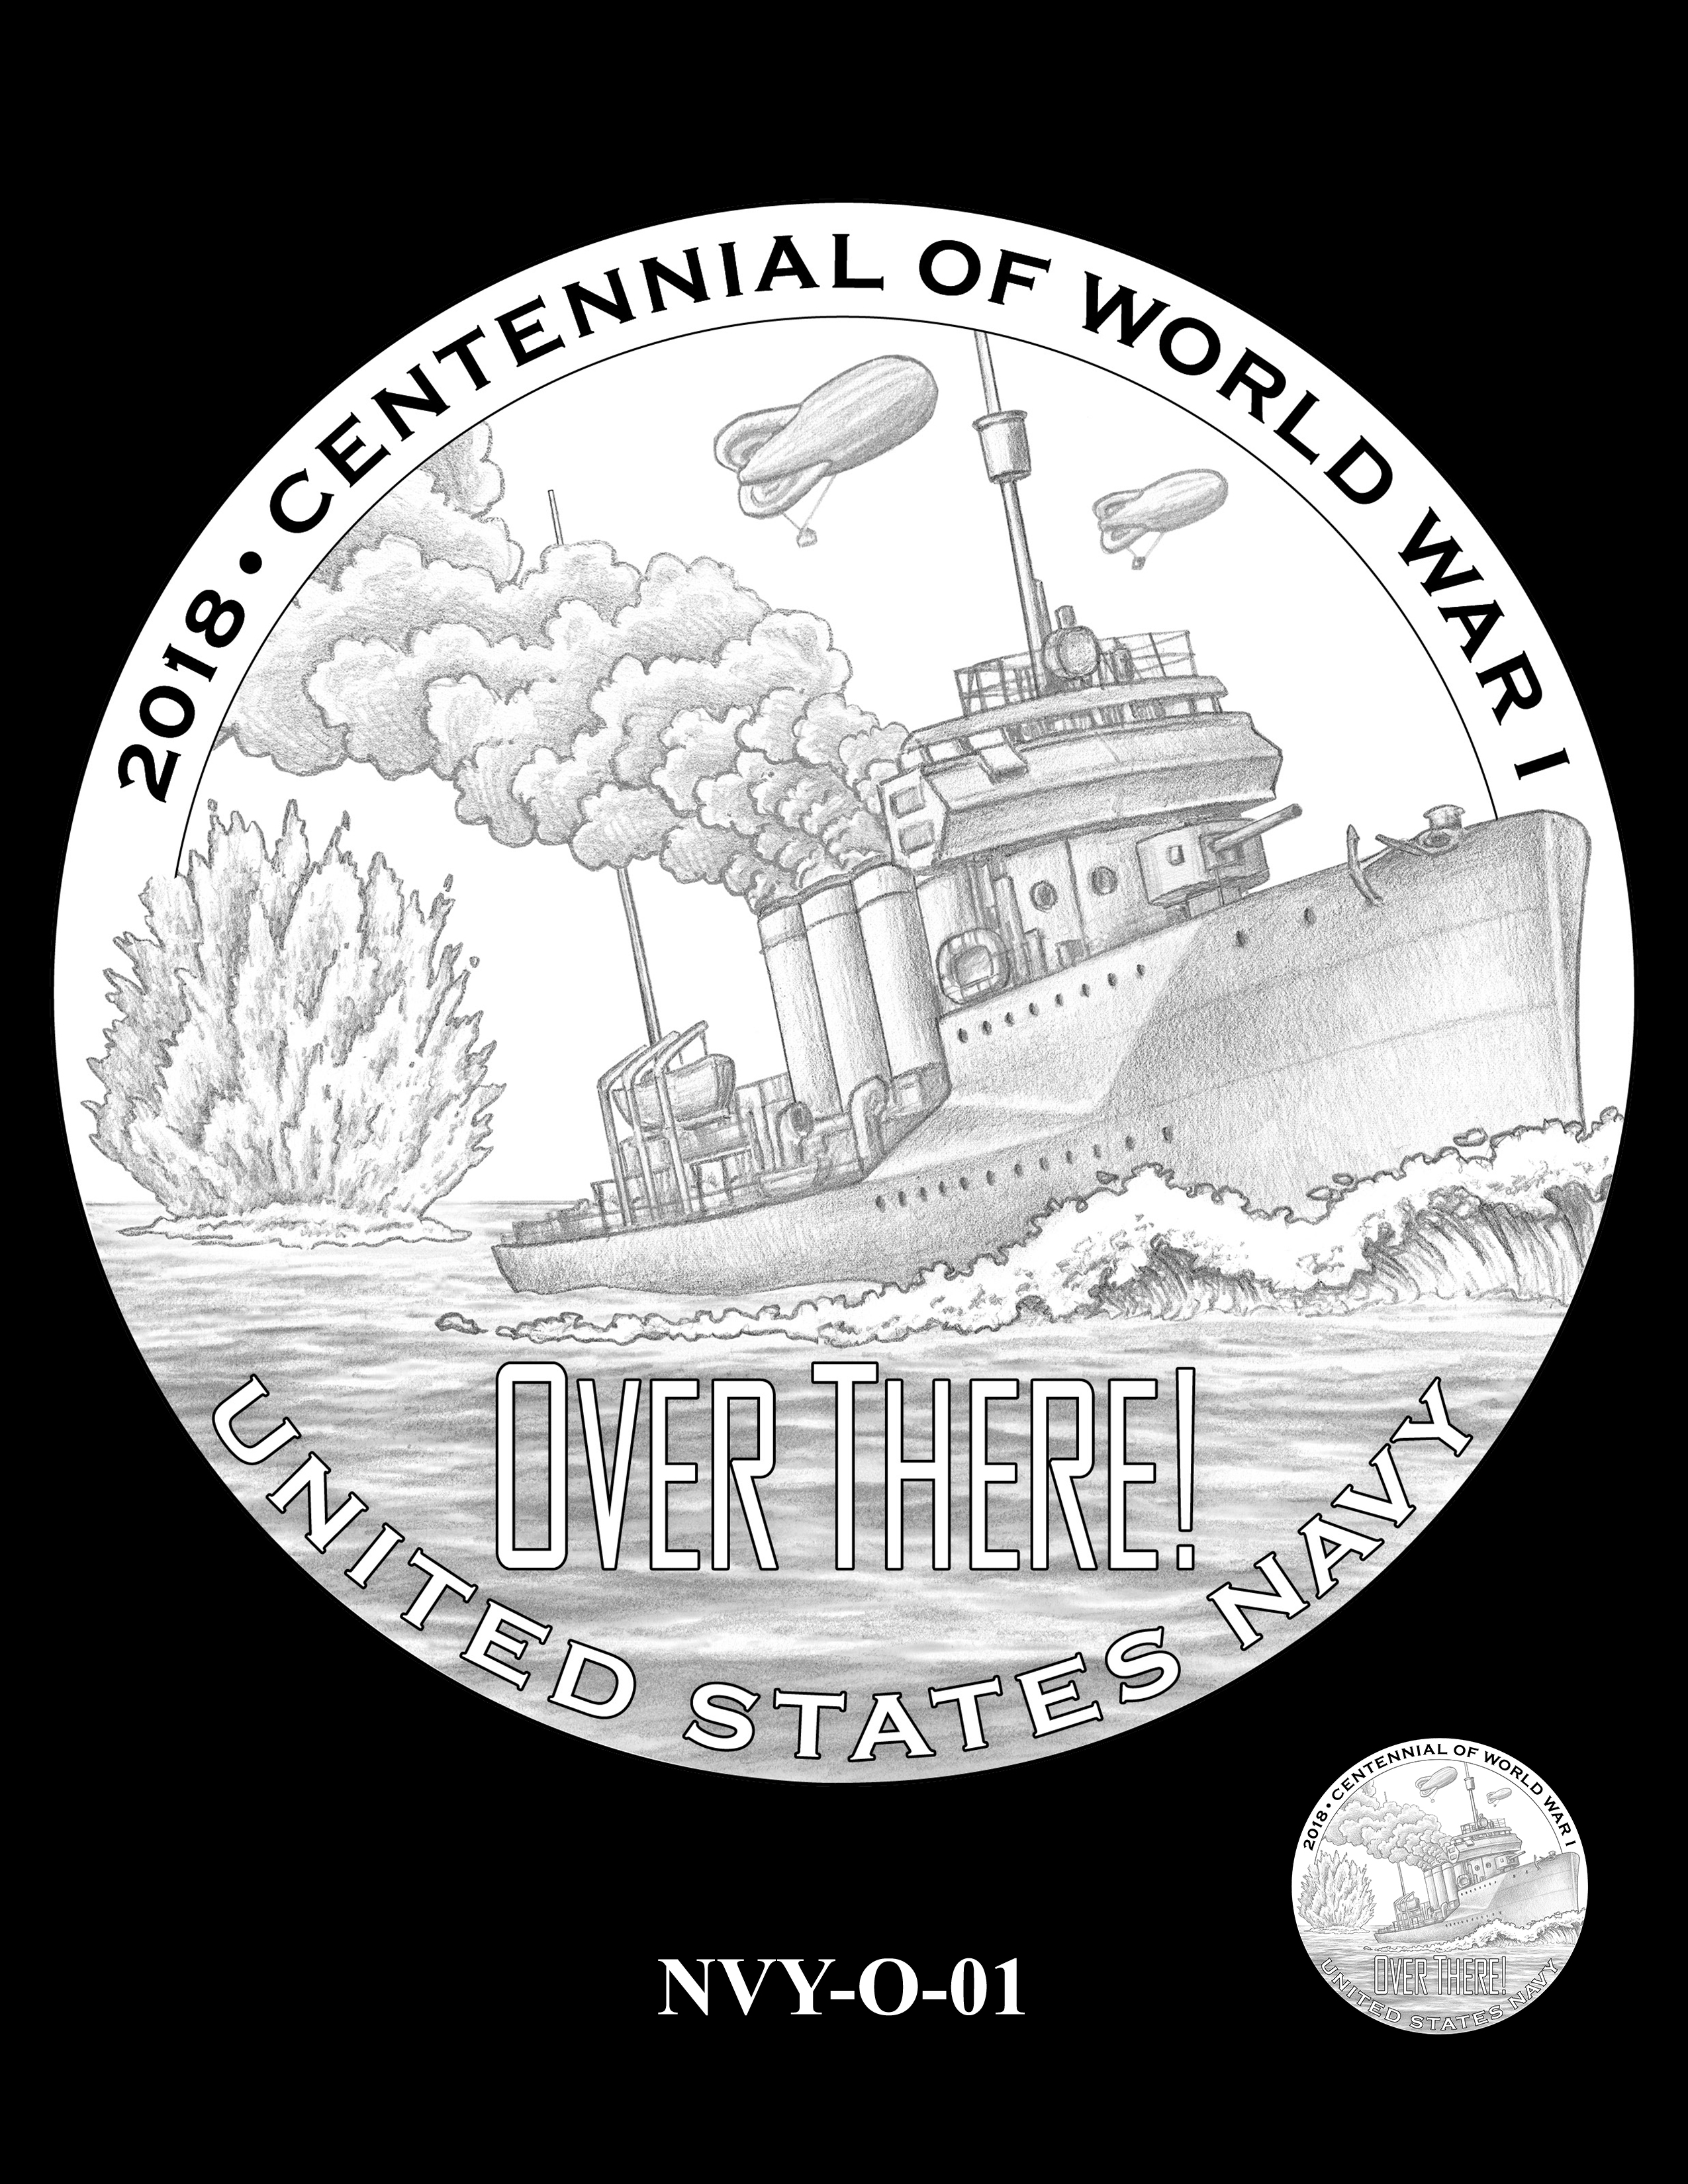 P1-NVY-O-01 -- 2018-World War I Silver Medals - Navy